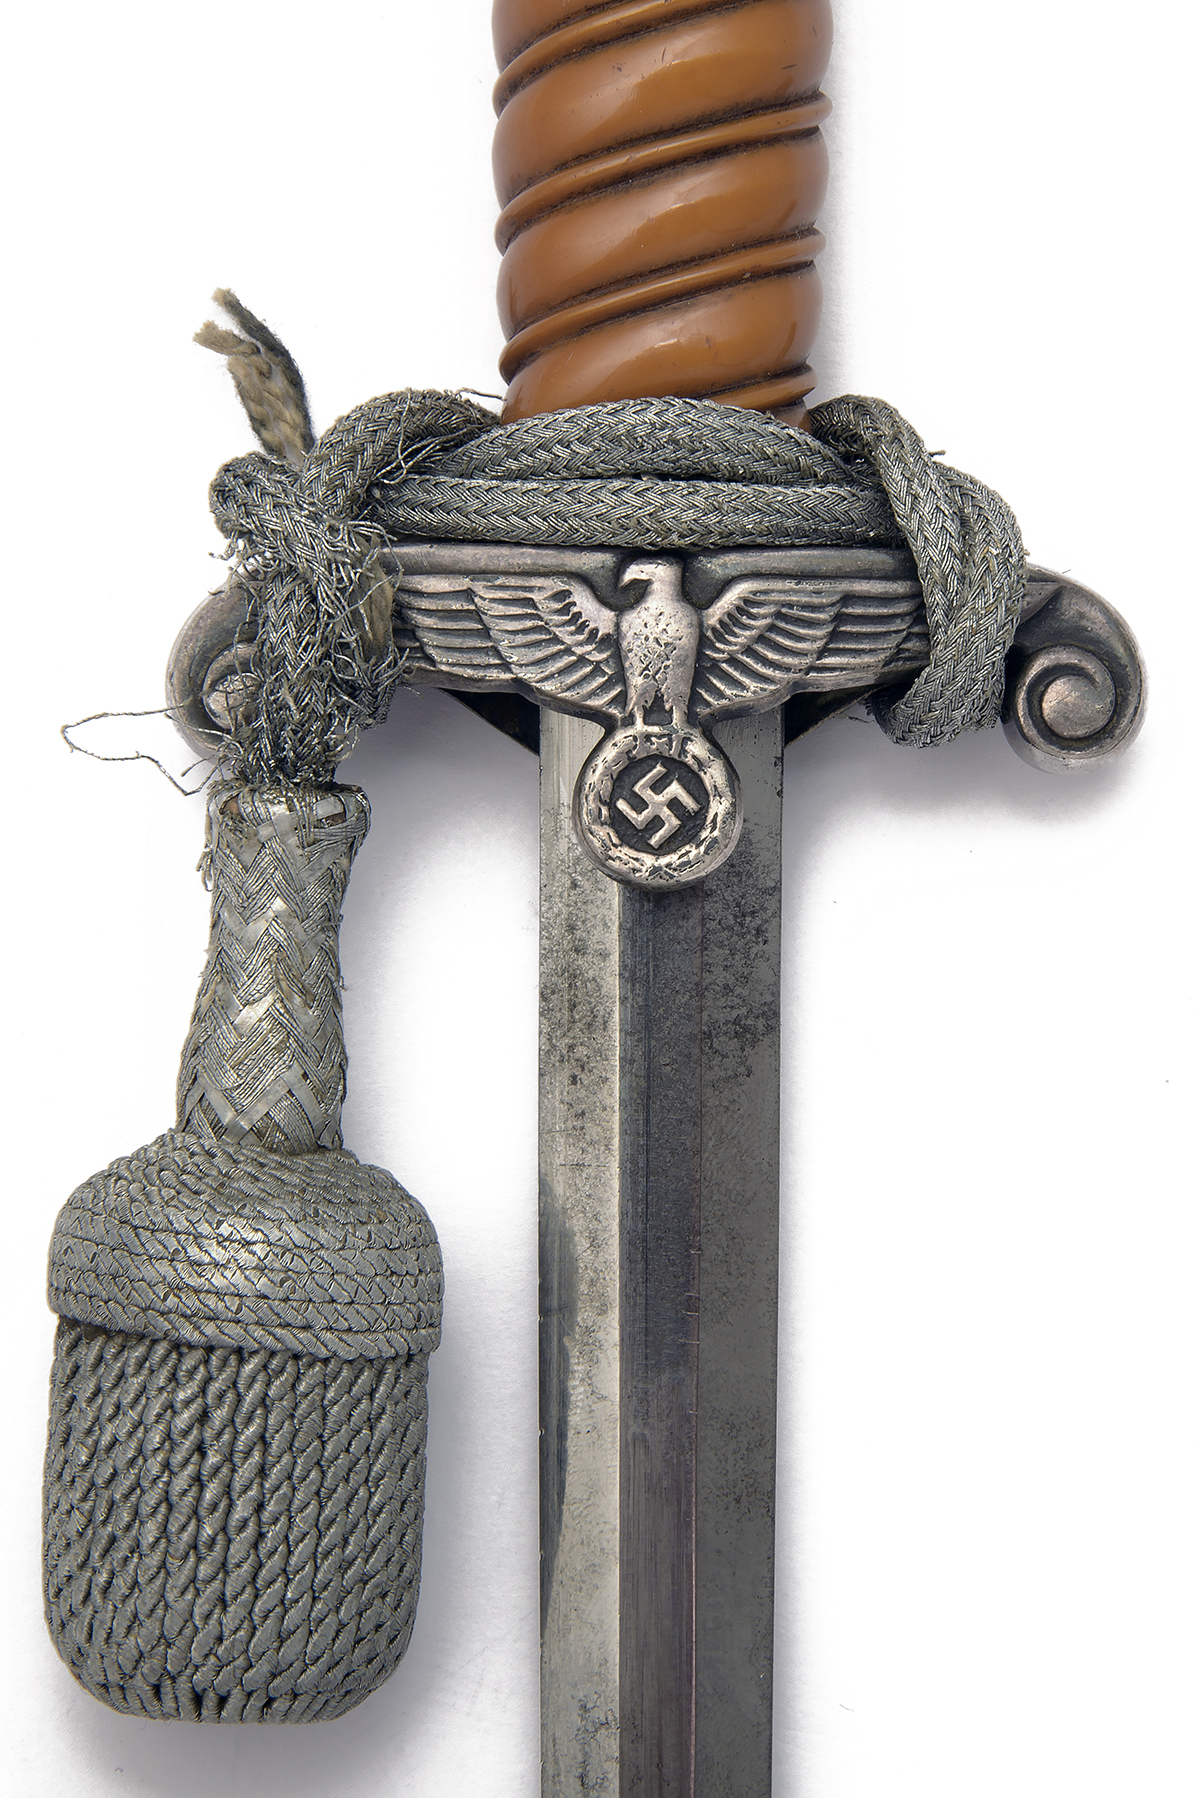 ALCOSO, SOLINGEN A WORLD-WAR TWO GERMAN ARMY DRESS DAGGER, World War Two production in nickel silver - Image 3 of 4